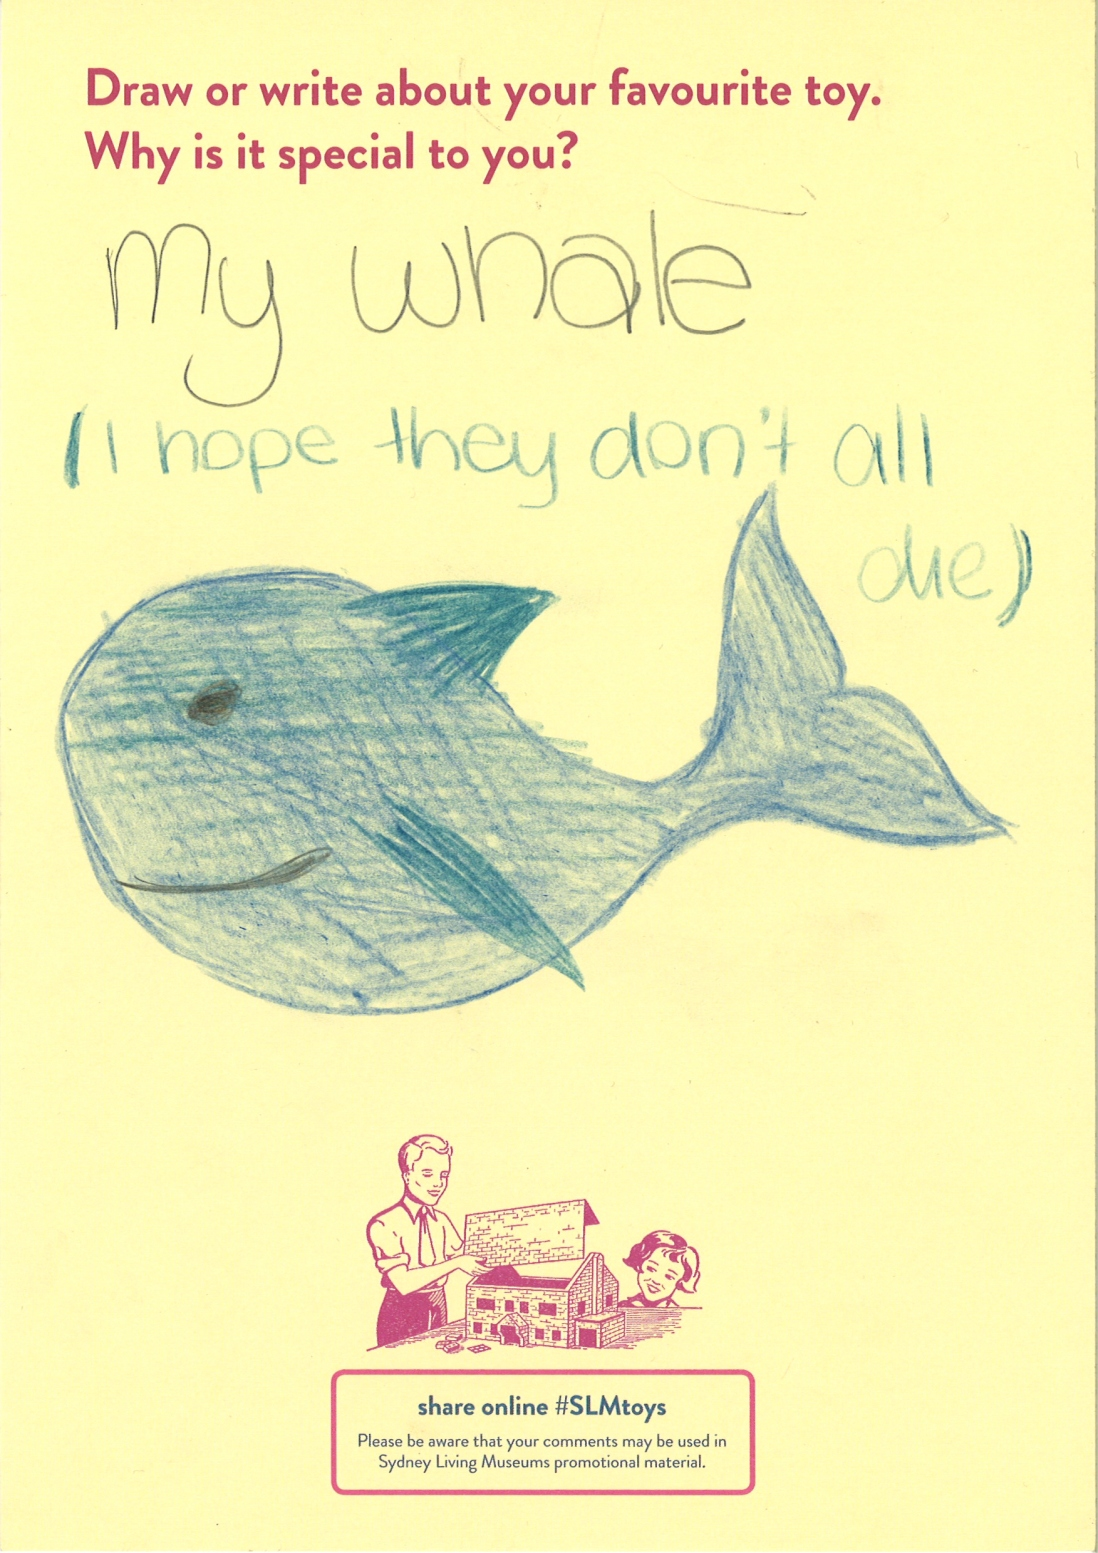 A child's drawing of a smiling blue whale